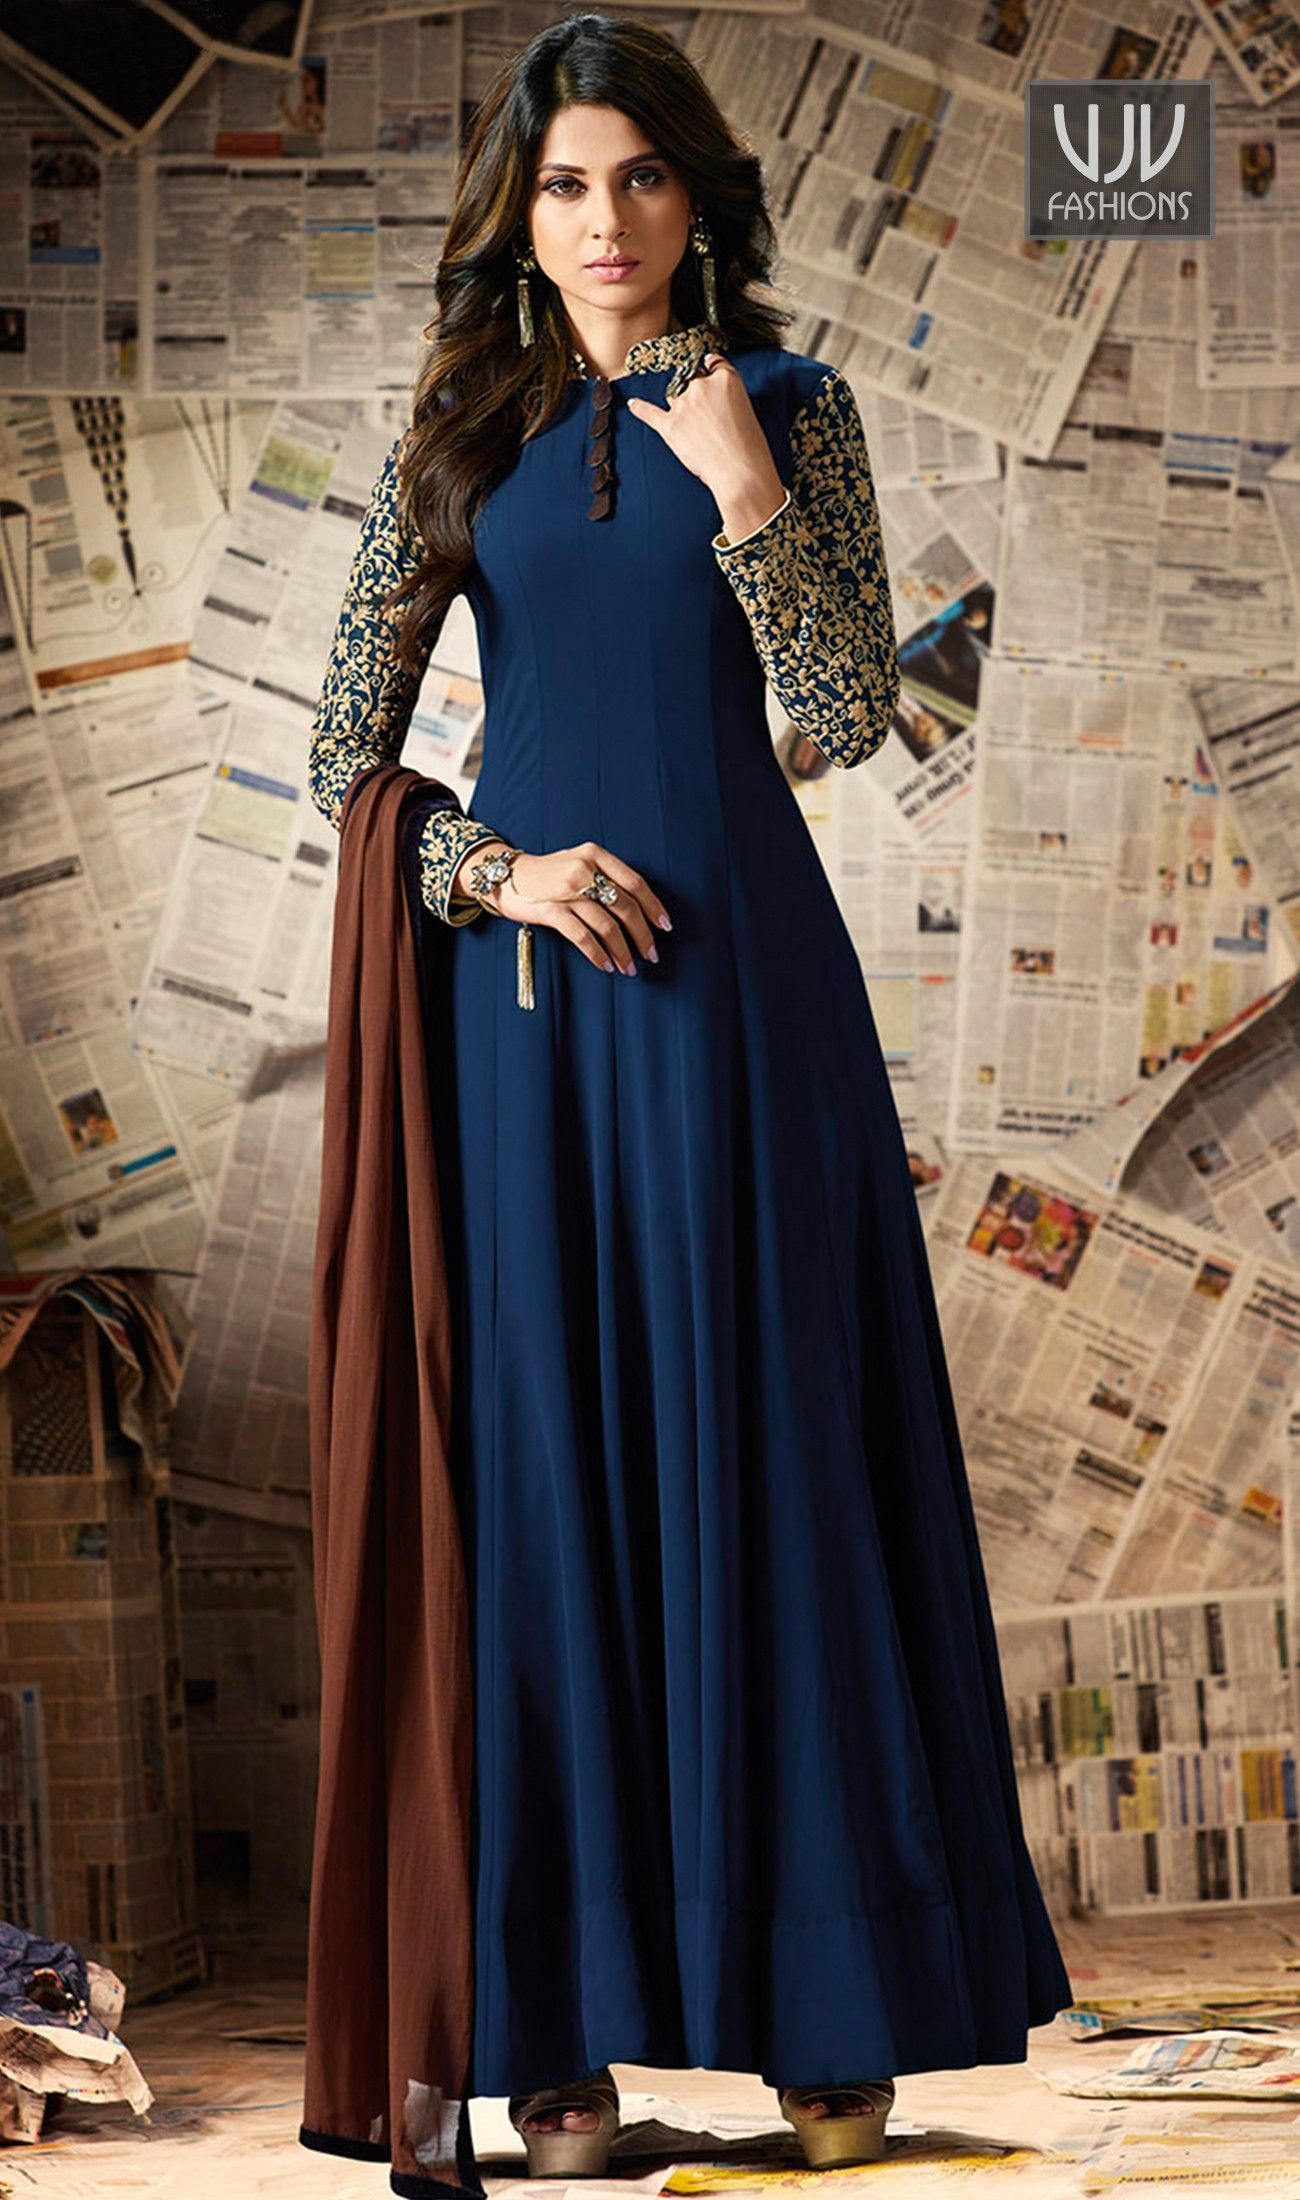 958533a41e Jennifer Winget Blue Color Georgette Anarkali Designer Suit Make an  adorable statement in this Jennifer Winget navy blue color georgette  designer anarkali ...